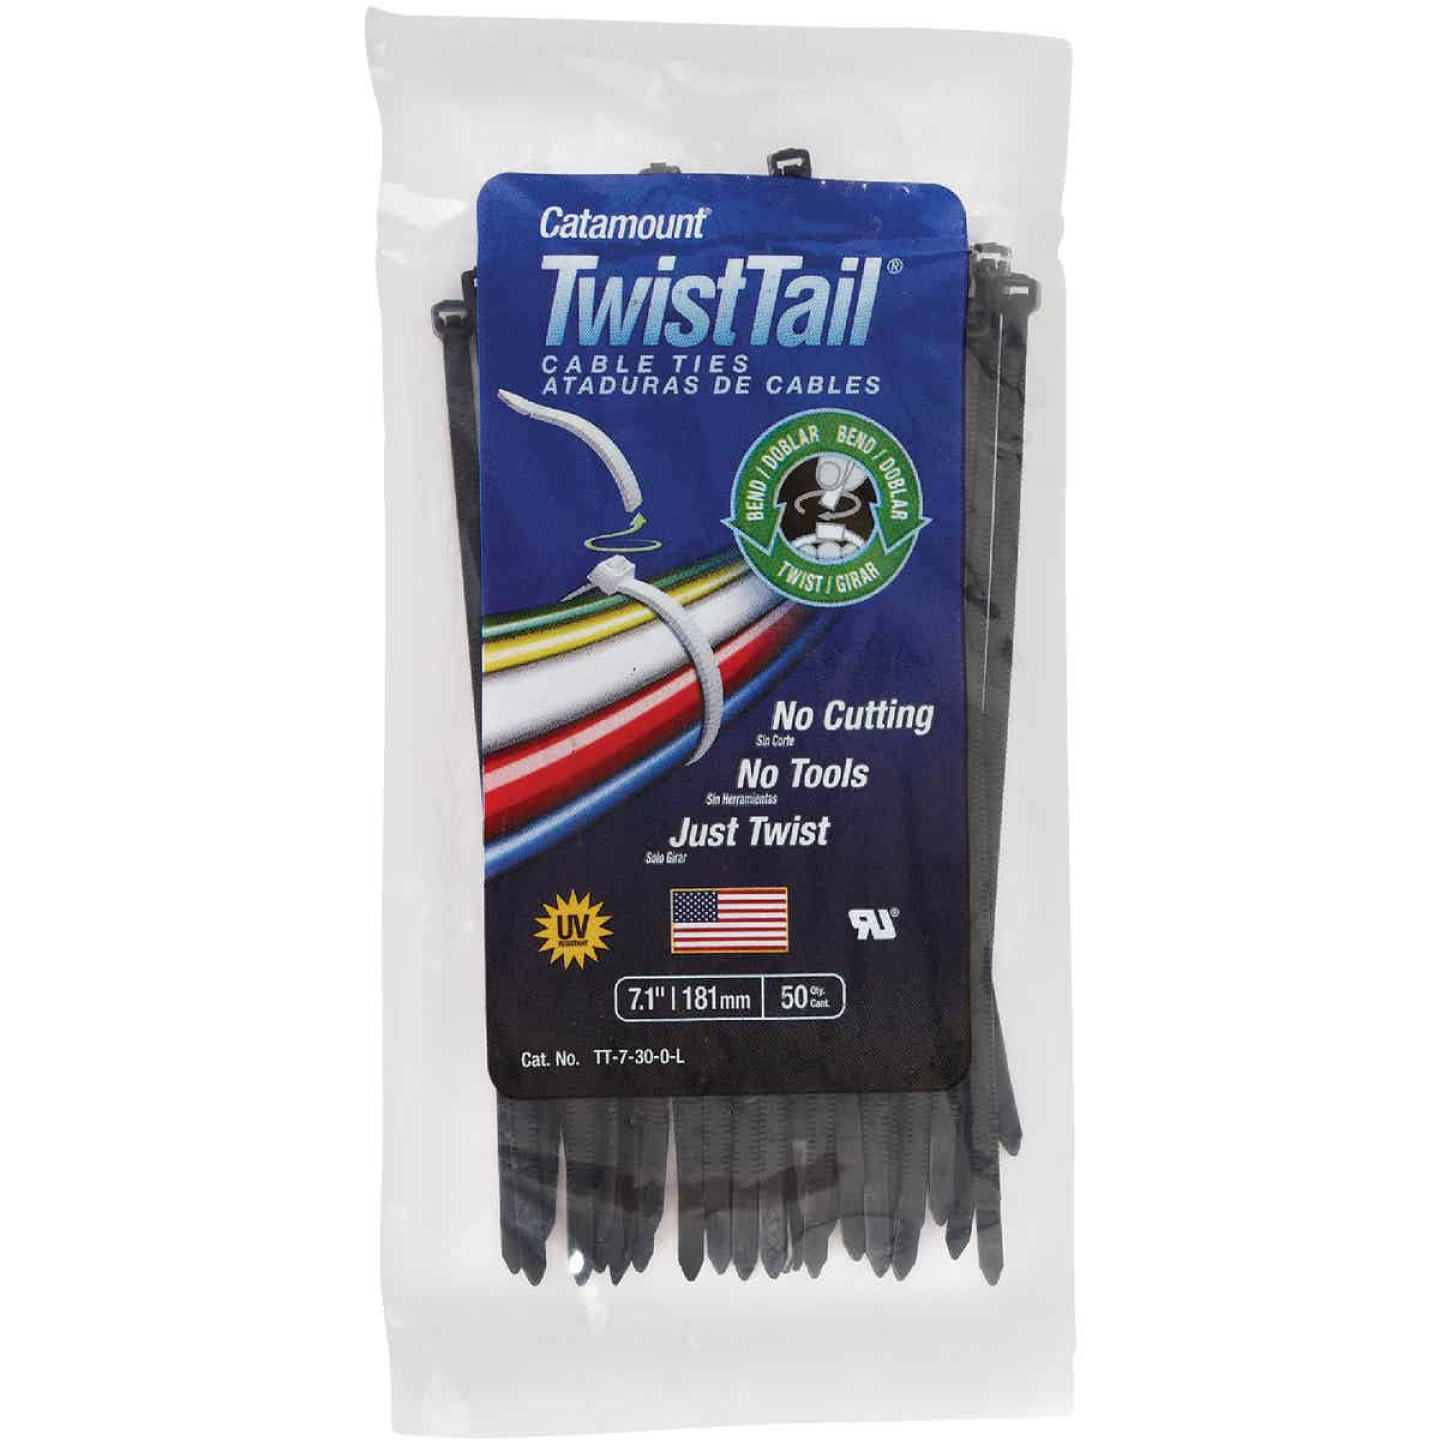 Catamount Twist Tail 7 In. x 0.187 In. Black Nylon Cable Tie (50-Pack) Image 2